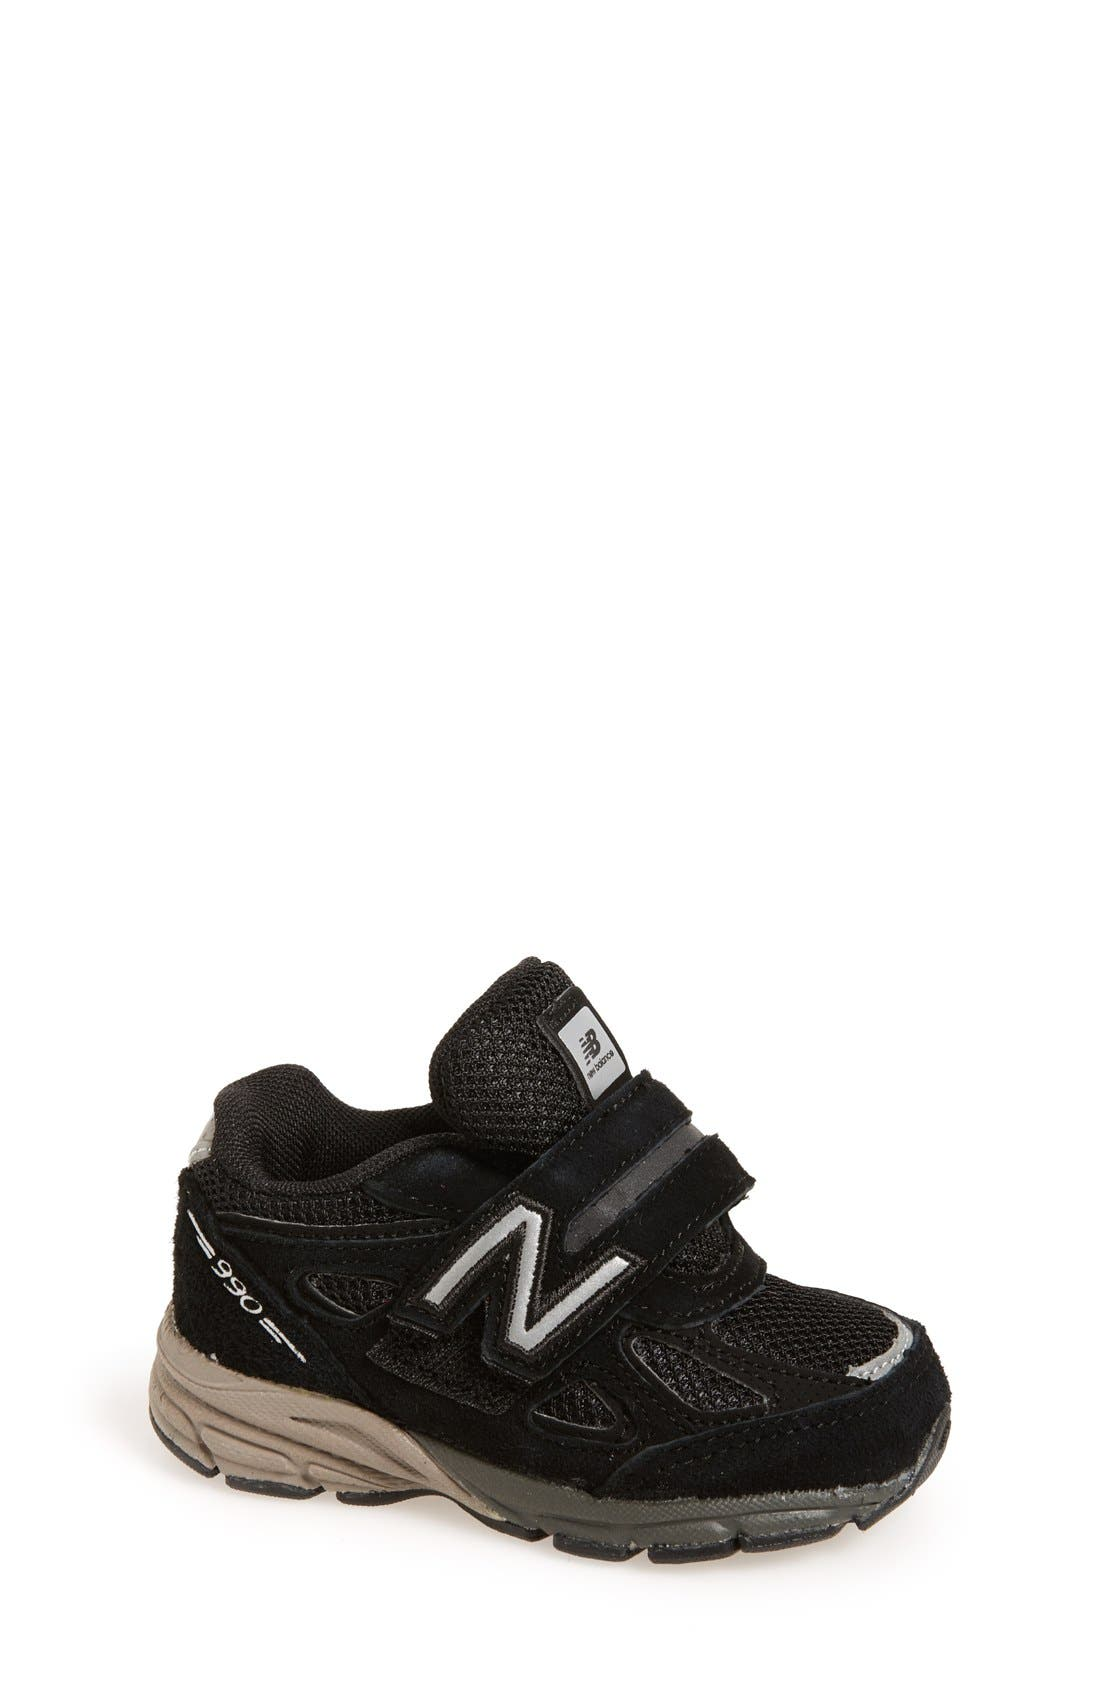 '990' Sneaker,                         Main,                         color, 001